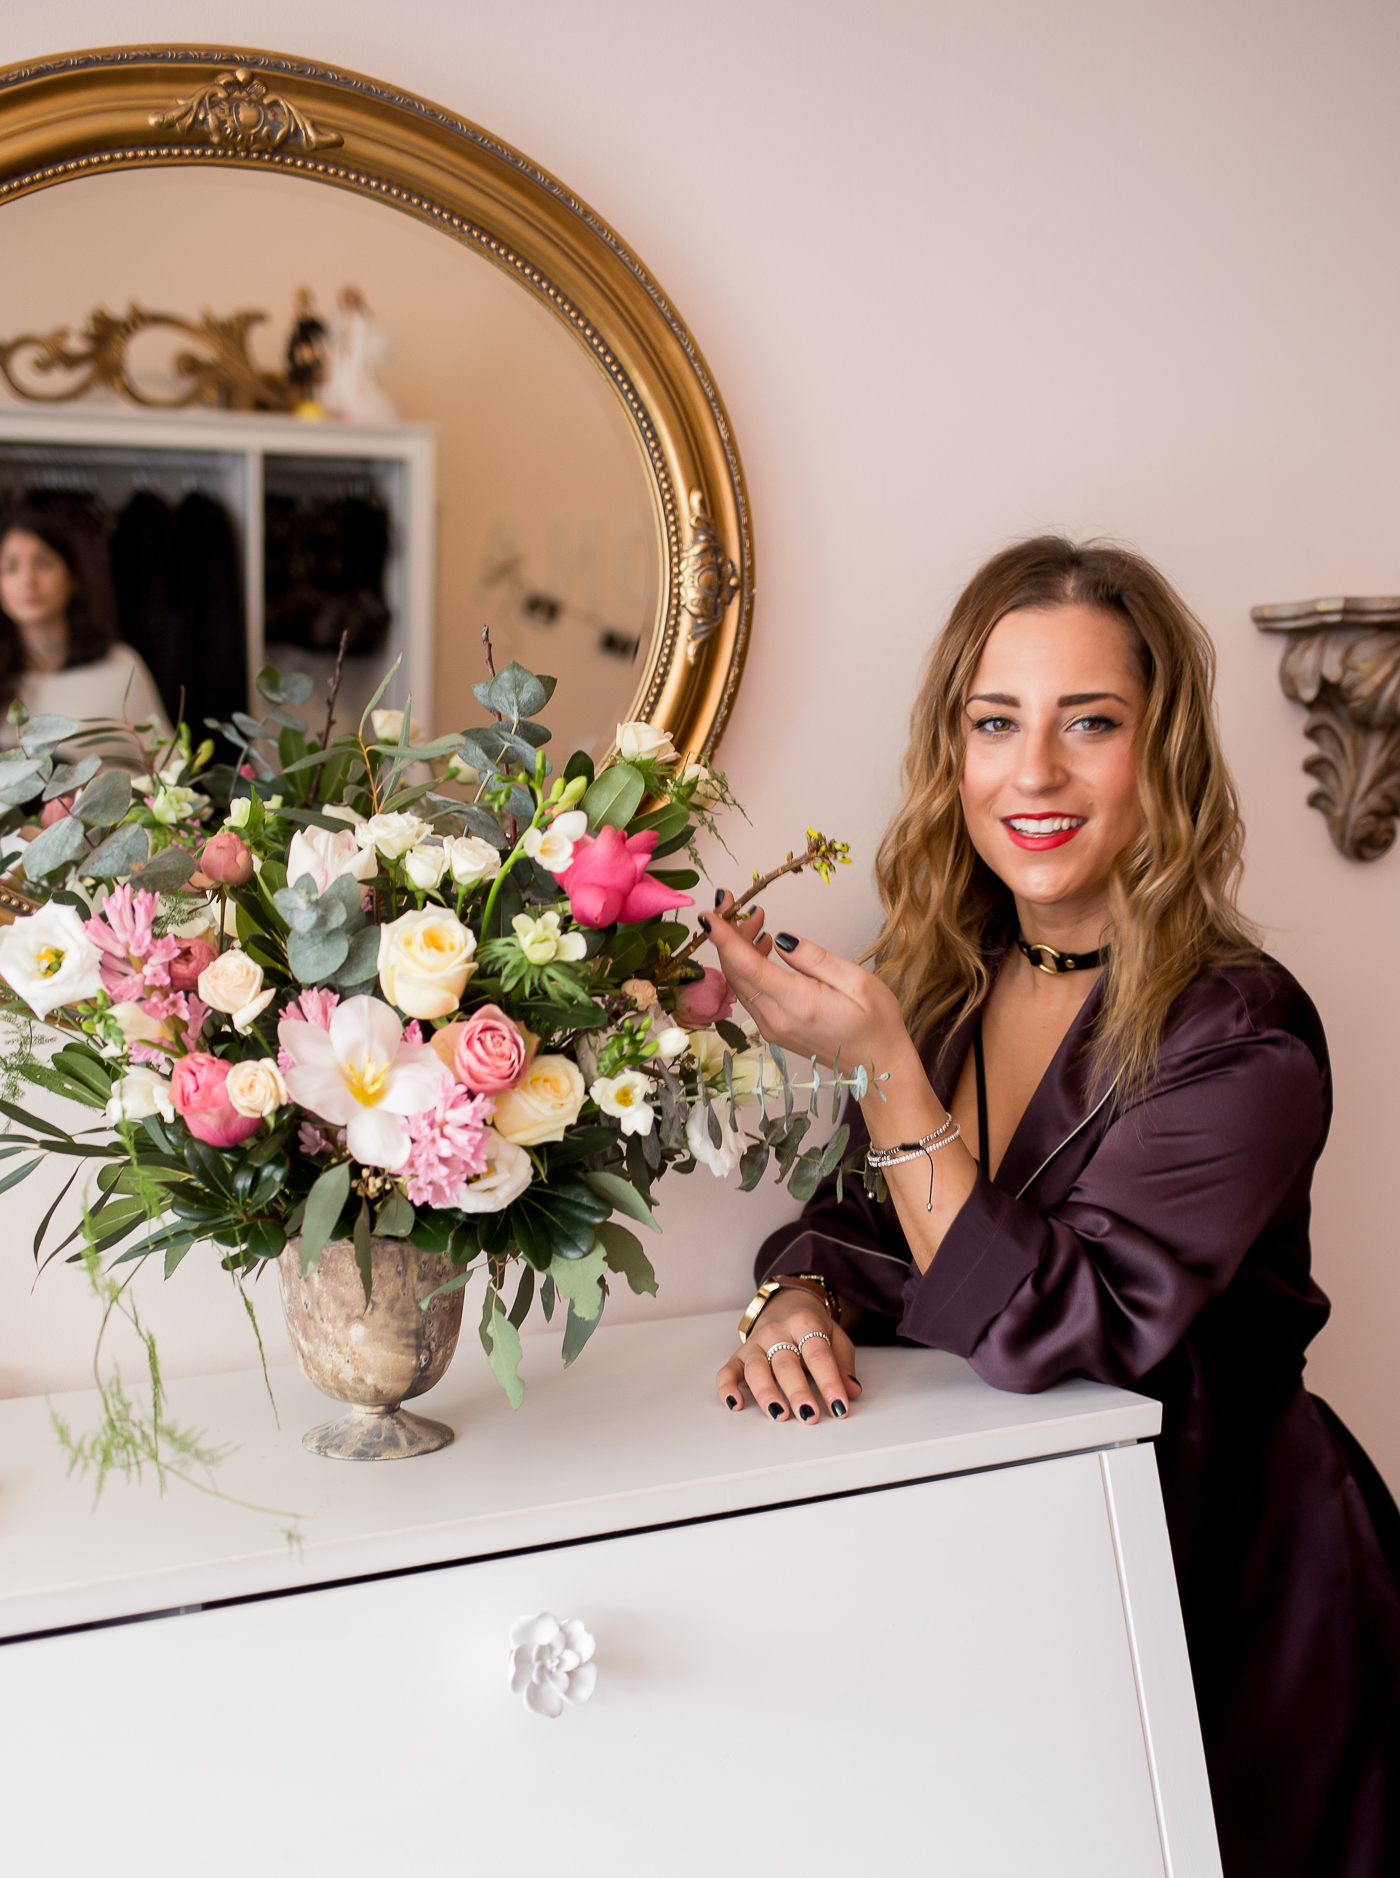 Toronto bloggers collaborate on a girly photoshoot, with florals from Wildnorth Flowers